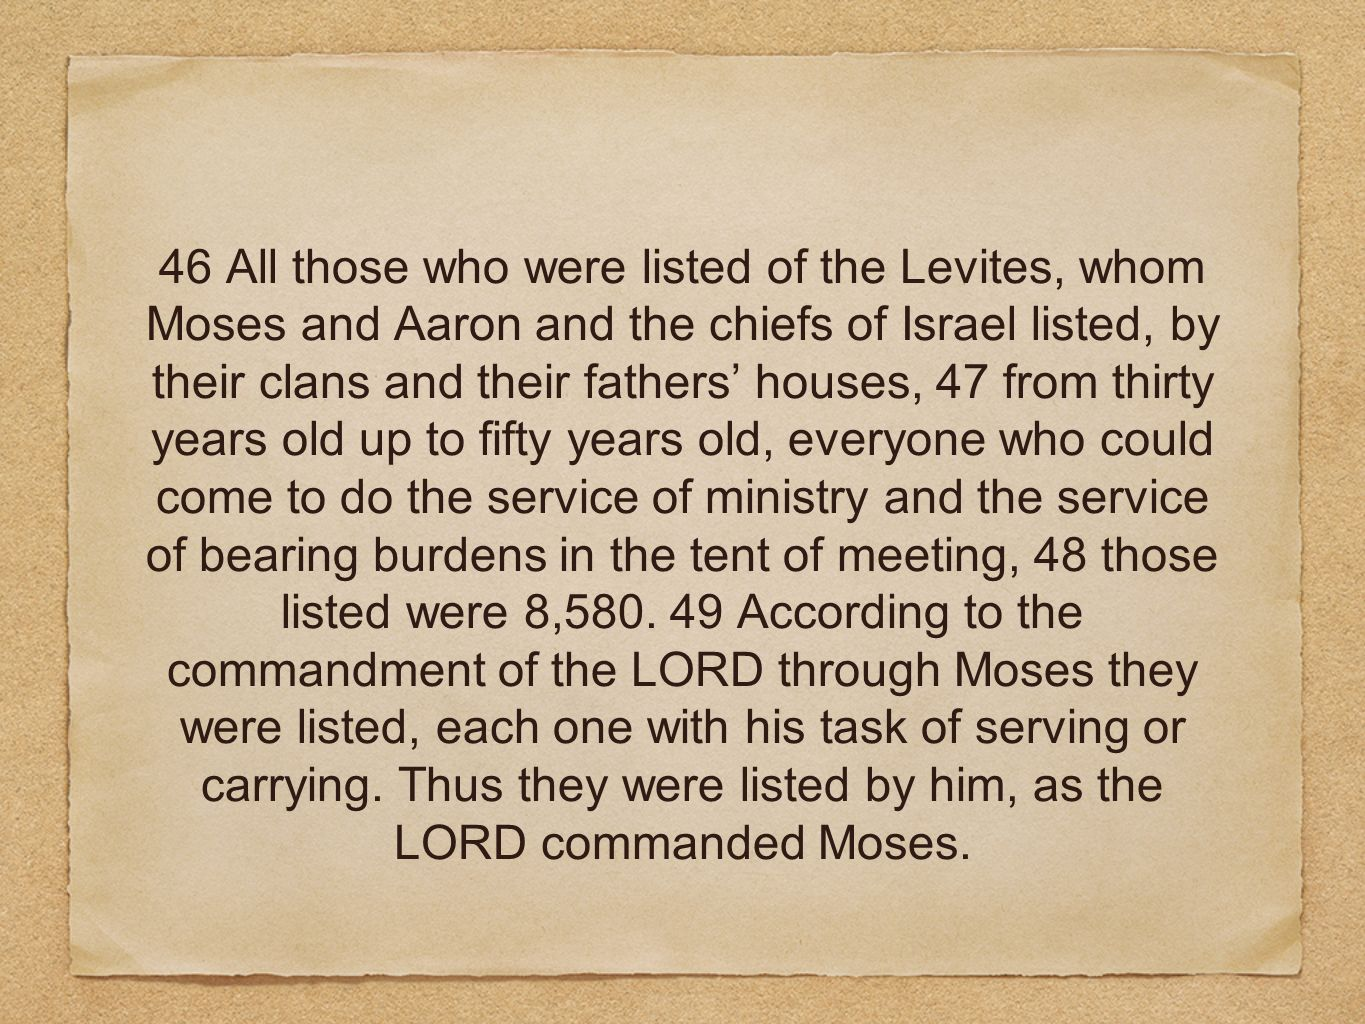 46 All those who were listed of the Levites, whom Moses and Aaron and the chiefs of Israel listed, by their clans and their fathers' houses, 47 from thirty years old up to fifty years old, everyone who could come to do the service of ministry and the service of bearing burdens in the tent of meeting, 48 those listed were 8,580.